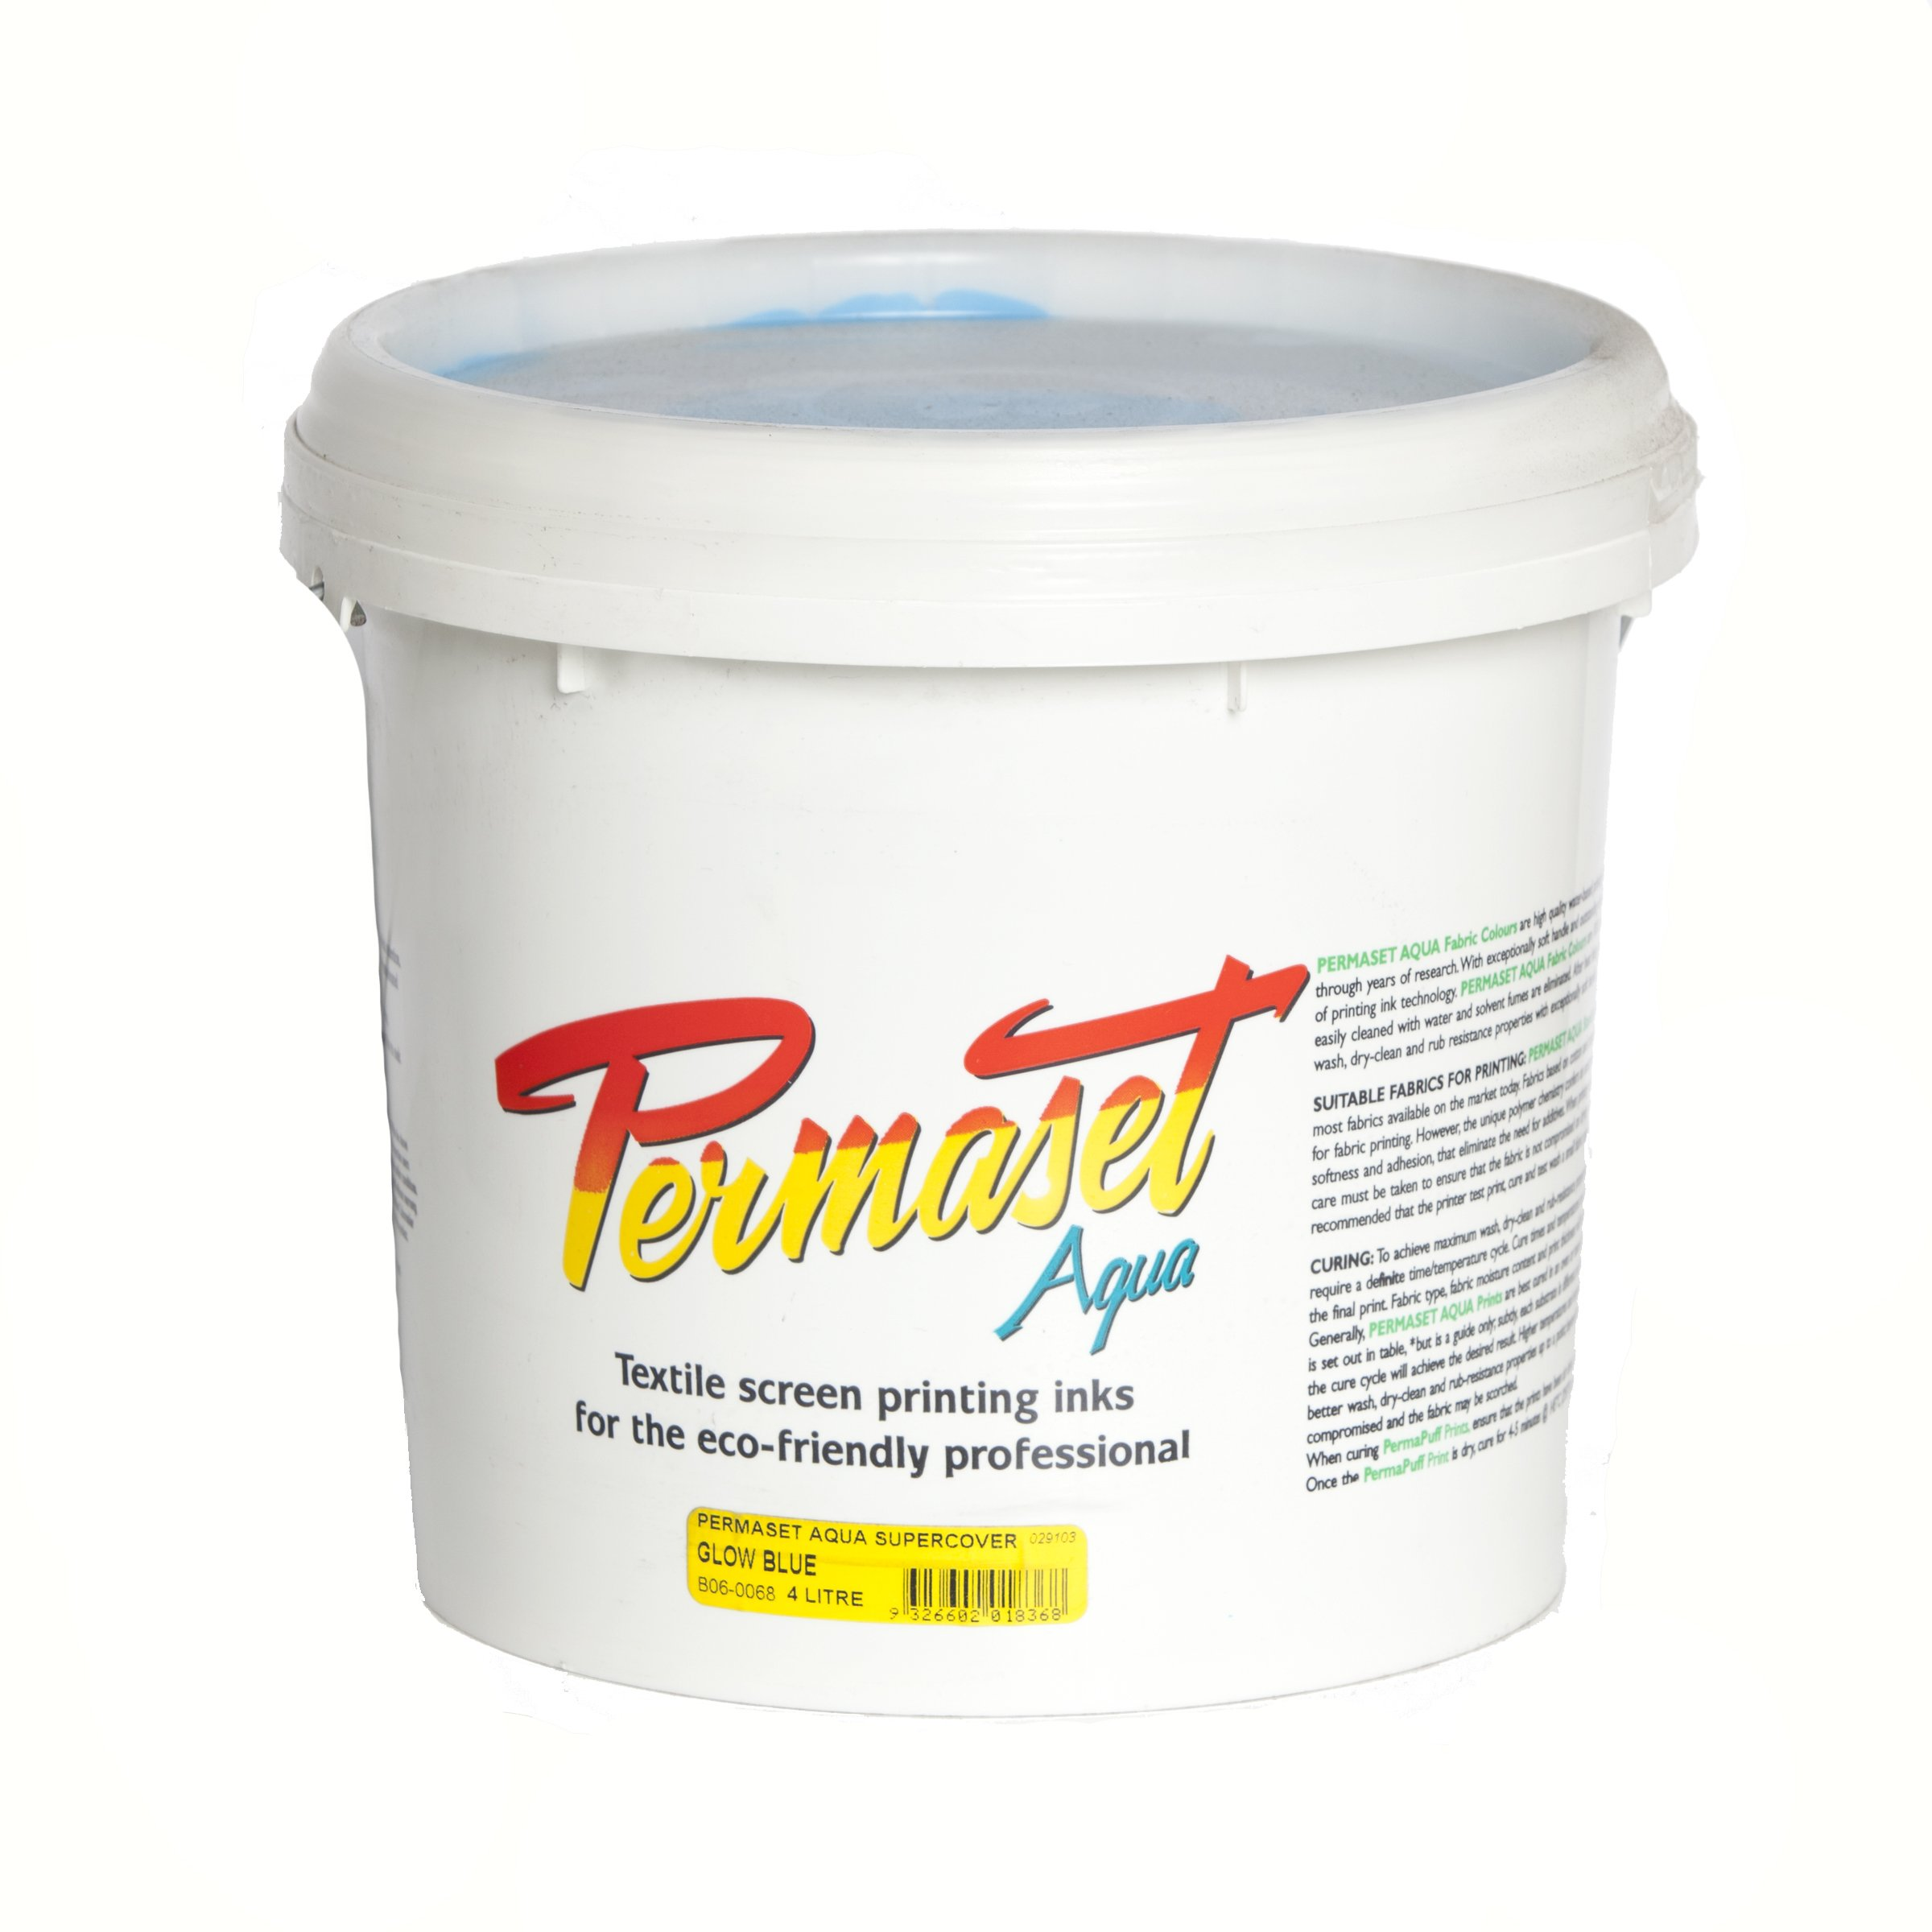 Permaset Aqua Supercover 4 Litre Fabric Printing Ink - Glow Blue by OfficeMarket